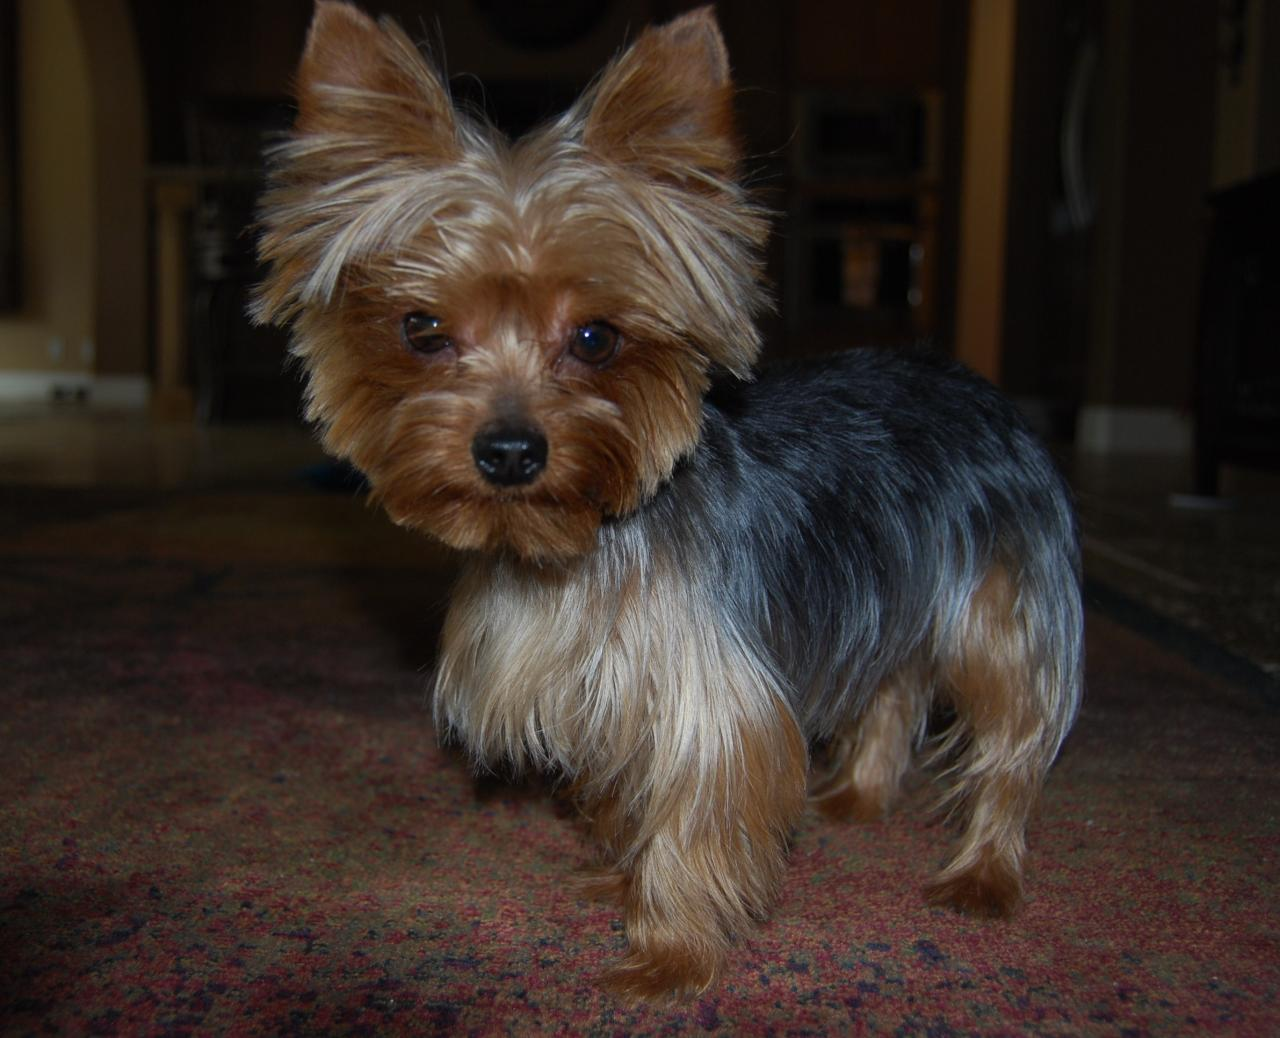 Yorkie Haircuts Pictures And Select The Best Style For Your Pet Pictures to pin on Pinterest